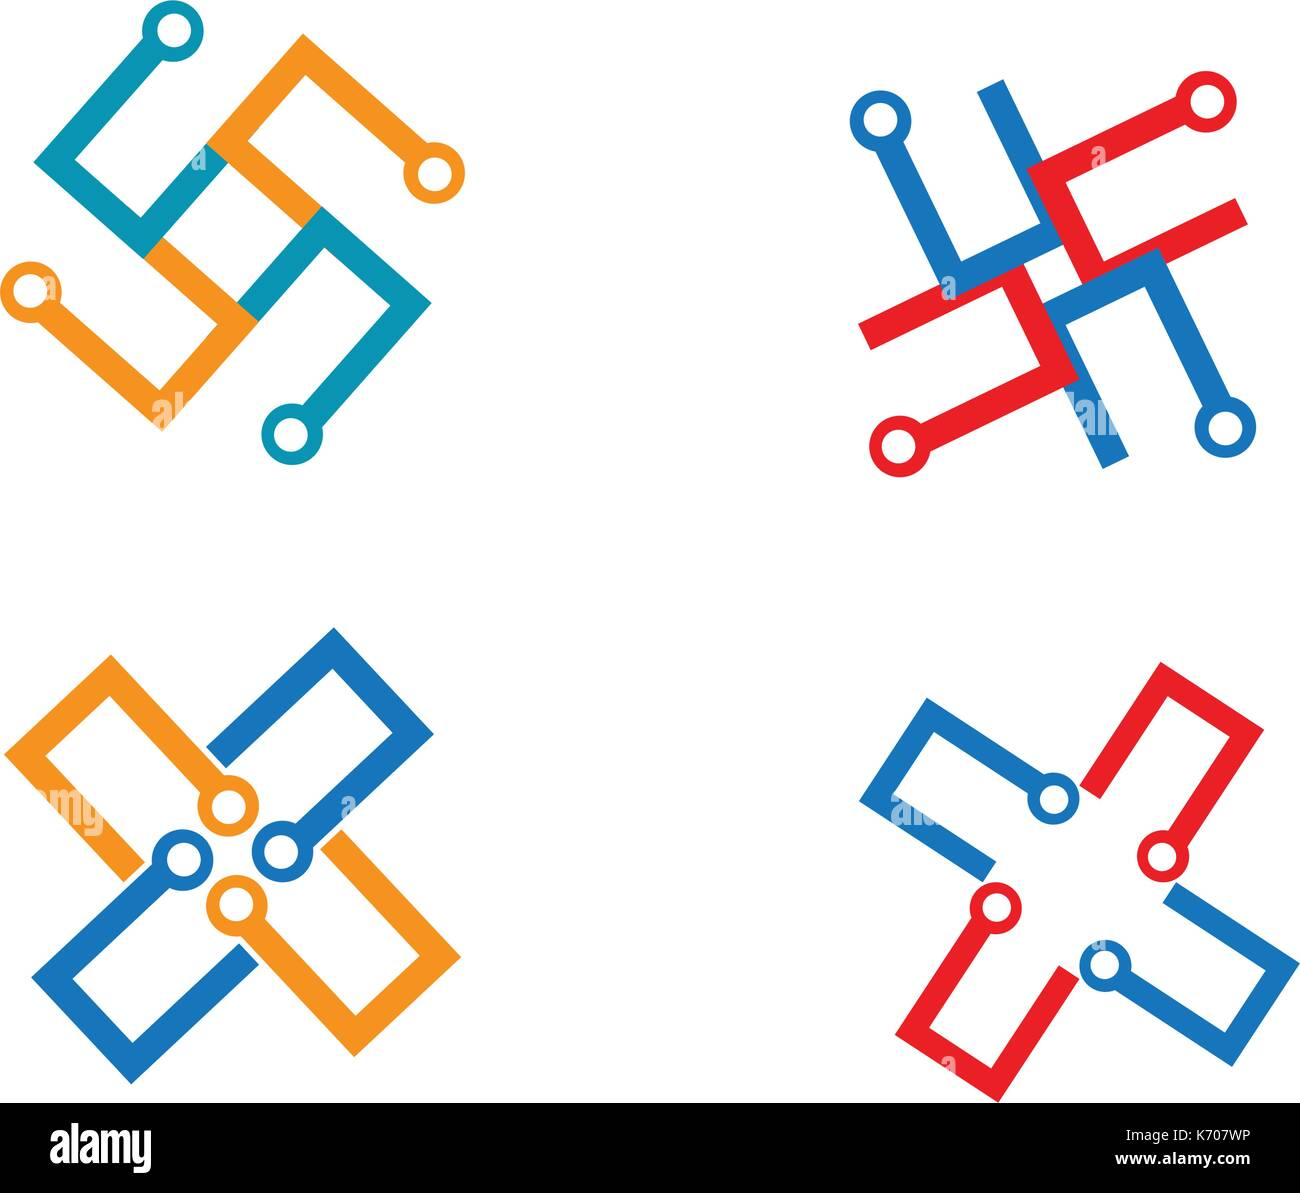 Wiring Stock Vector Images Alamy Schematic Icons Cable Wires Logo Template Icon